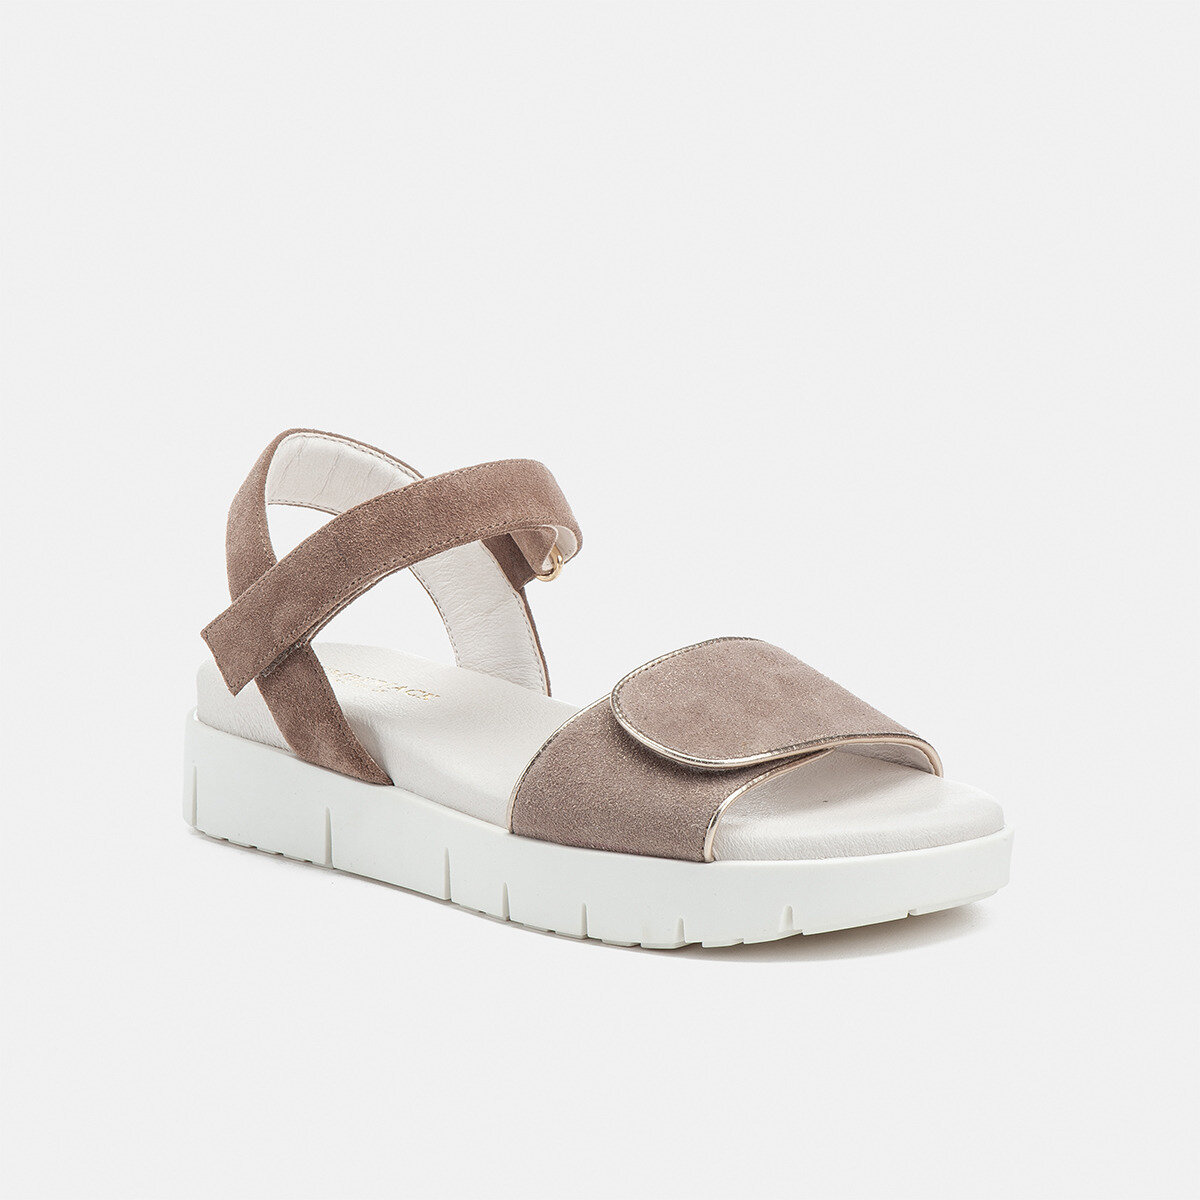 EVETTE TAUPE/GOLD METAL Woman Sandals